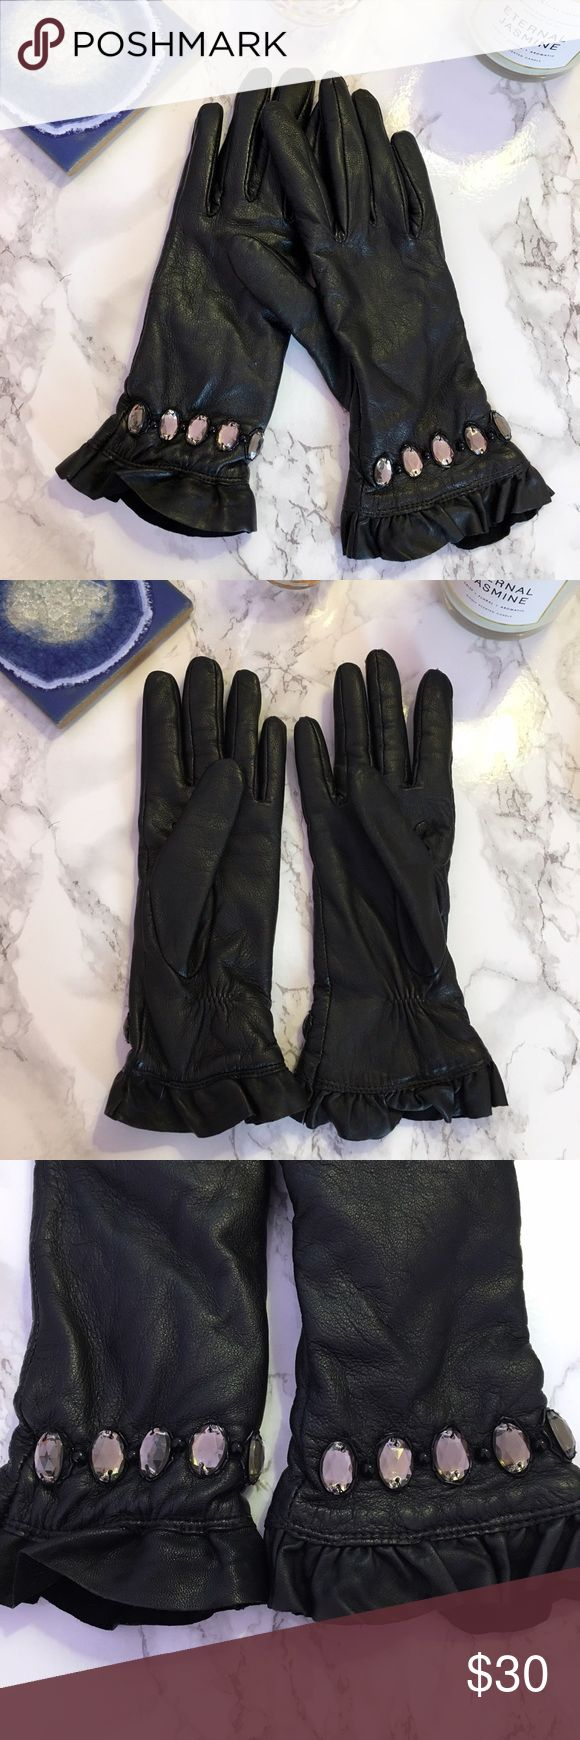 Offer Me🥂NWOT Black Faux Leather gloves Black faux leather gloves with gorgeous gem and ruffle detailing. If you have petite hands, these are perfect for you! They have a fleece-like lining on the inside. Well structured gloves. Size Small. Accessories Gloves & Mittens